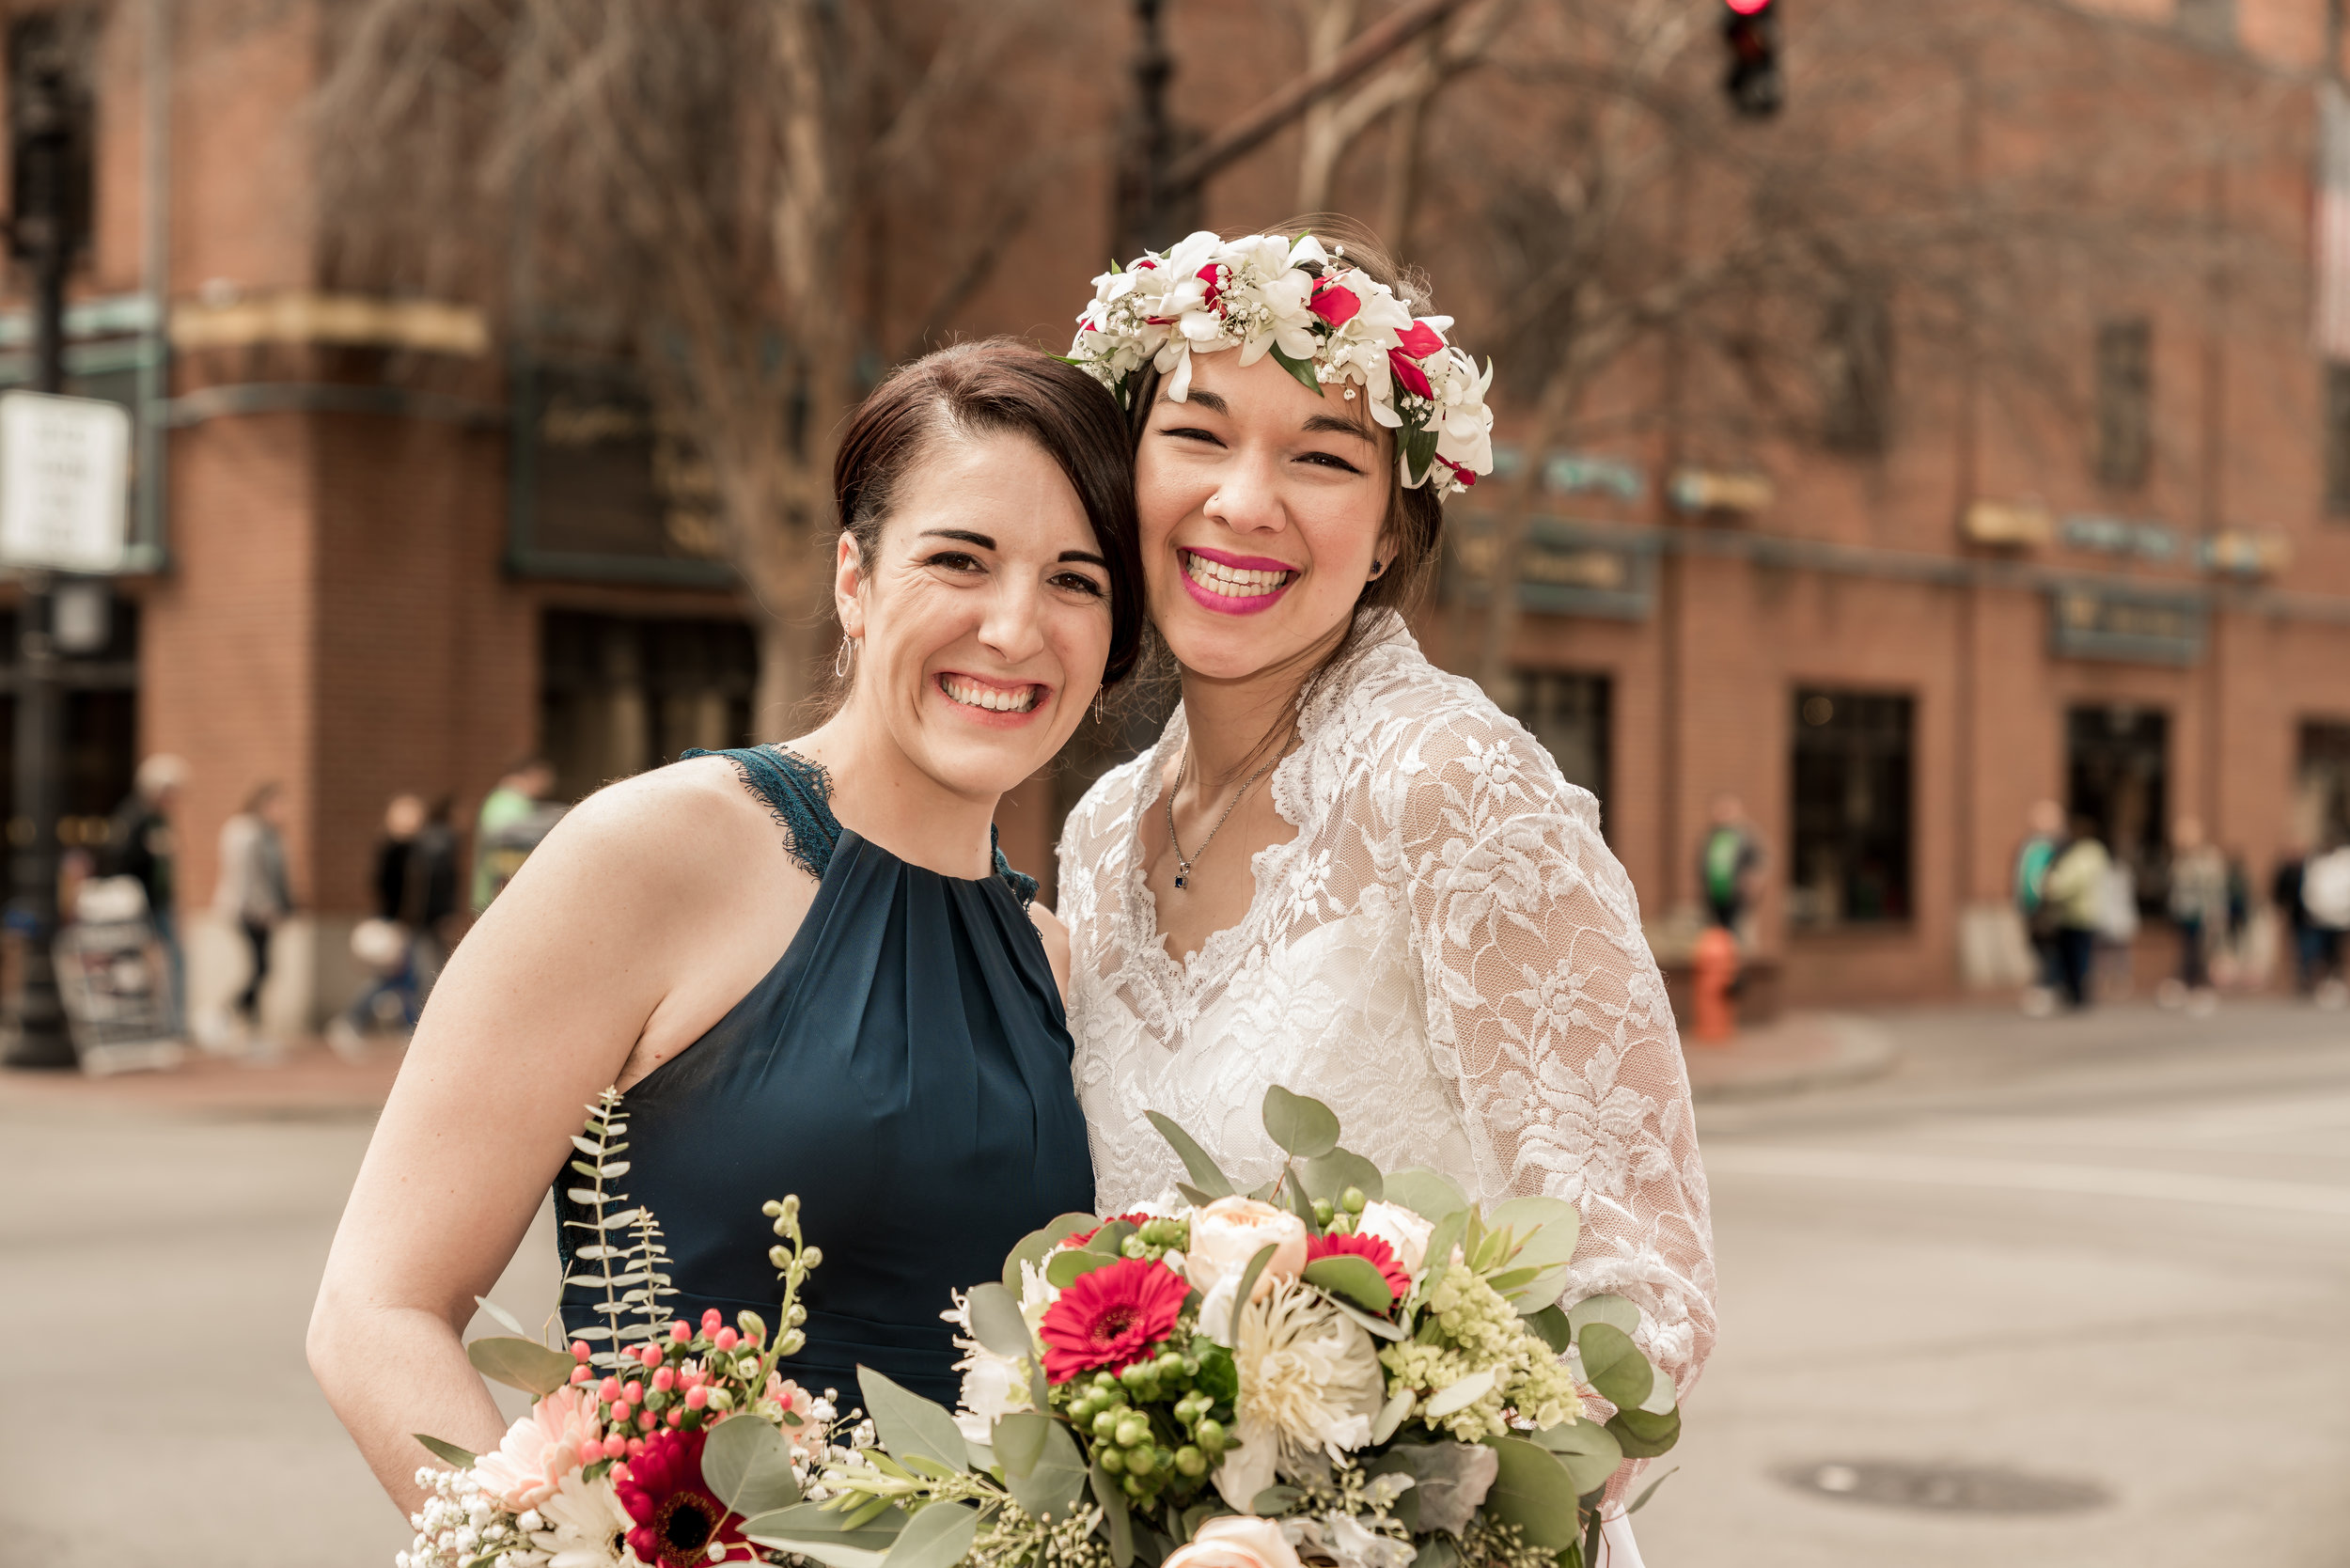 maid of honor field photo louisville photographer